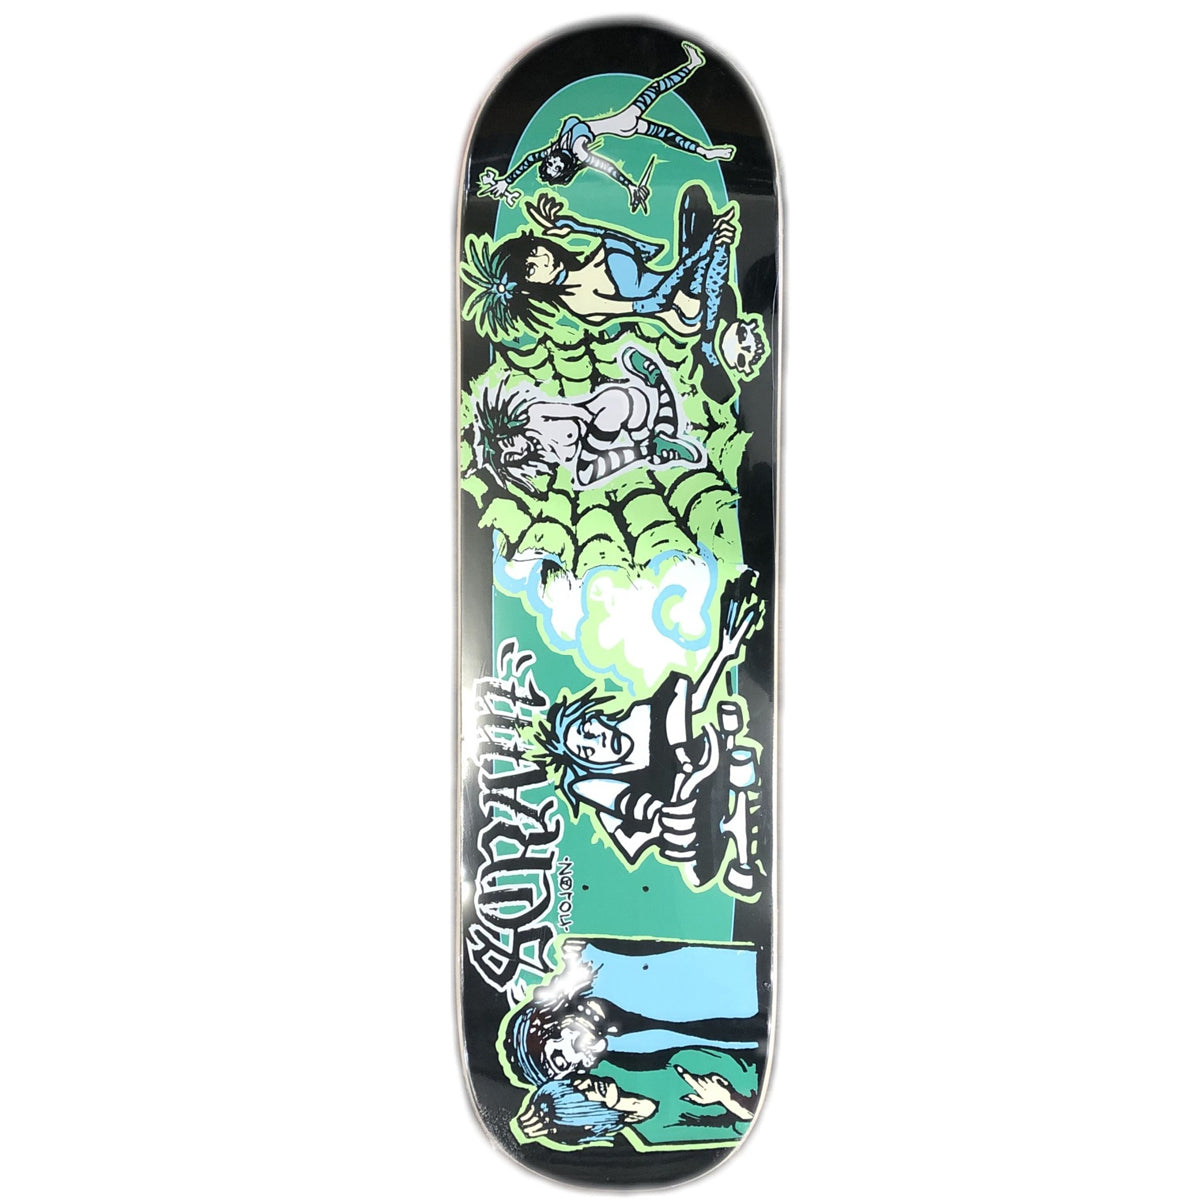 Scram Wow GG Pop Deck 8.25""